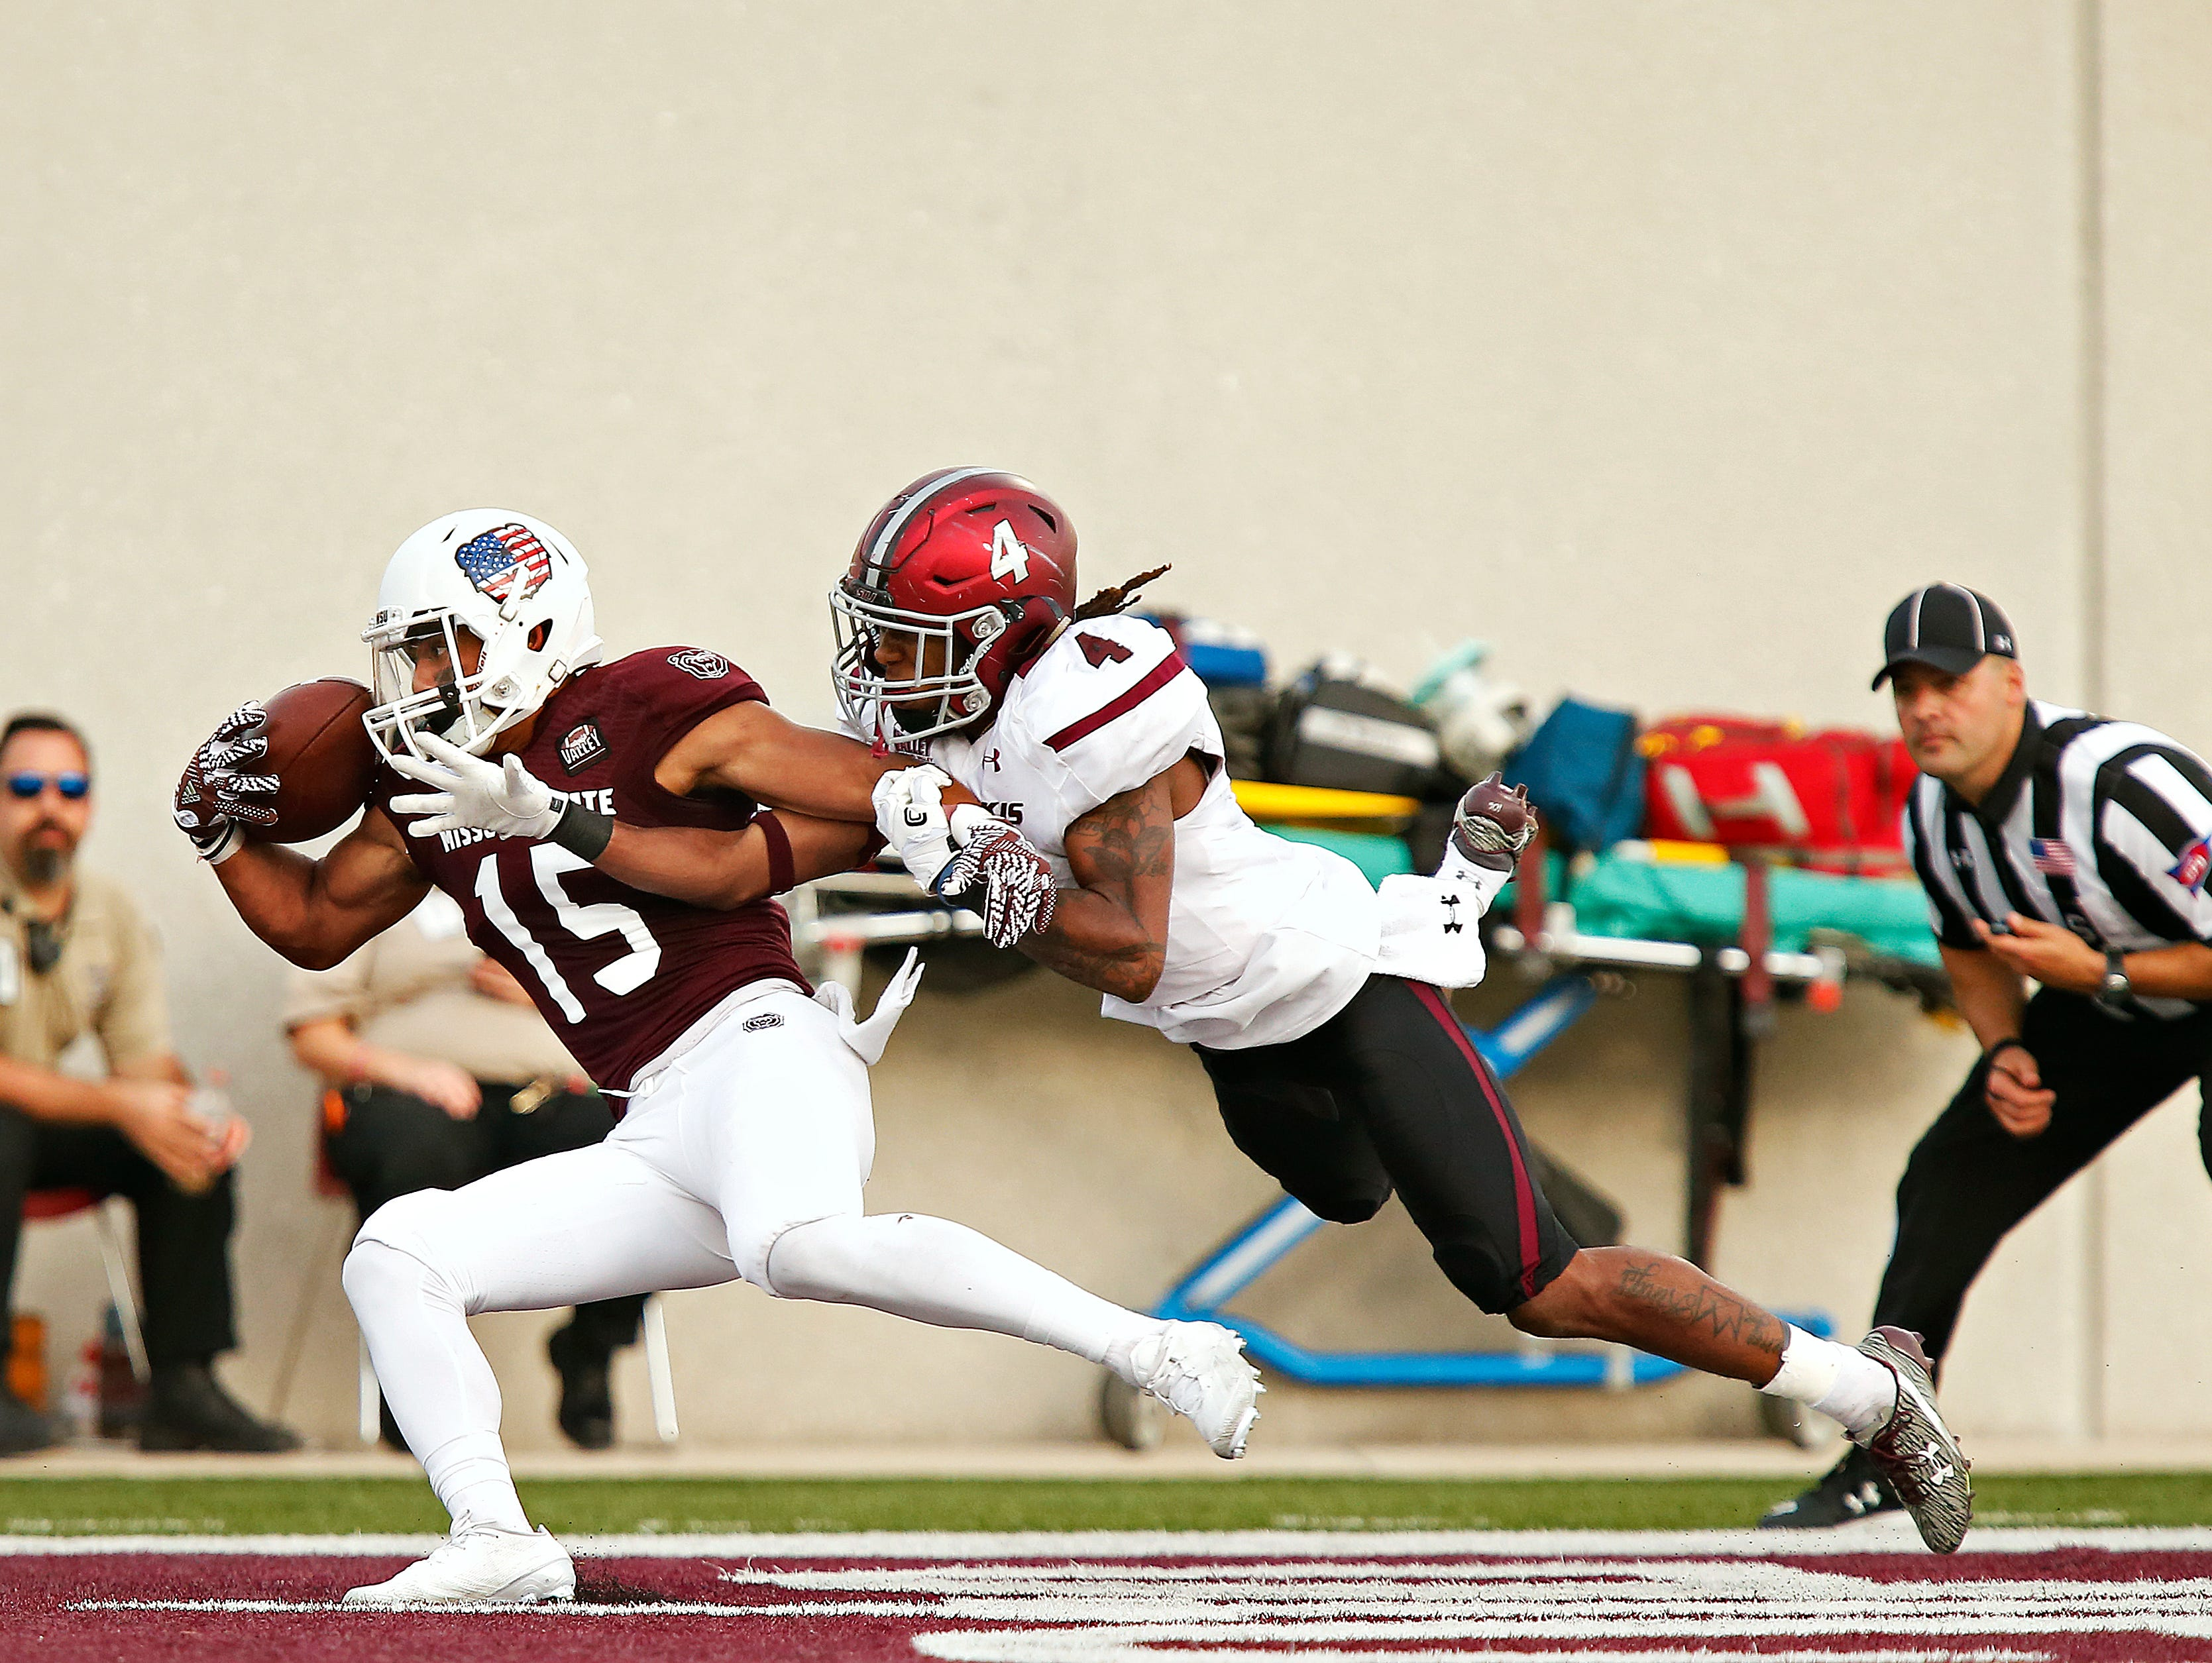 Zac Hoover's one-handed touchdown catch in Missouri State's victory over Southern Illinois is one of the lasting highlights from the 2016 season.